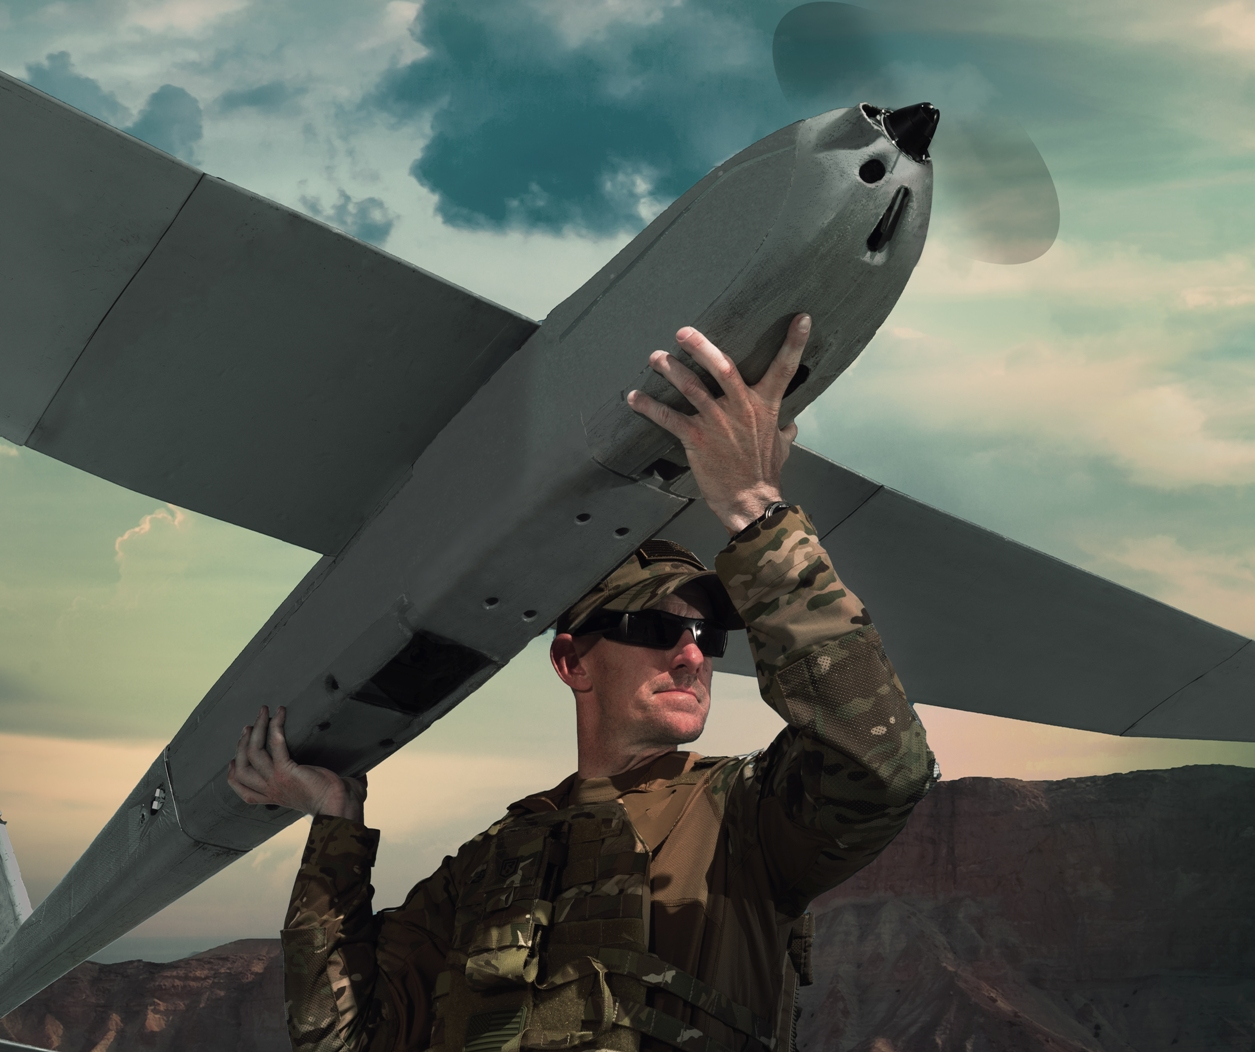 High Density Battery Provides Additional Flight Time for UAV